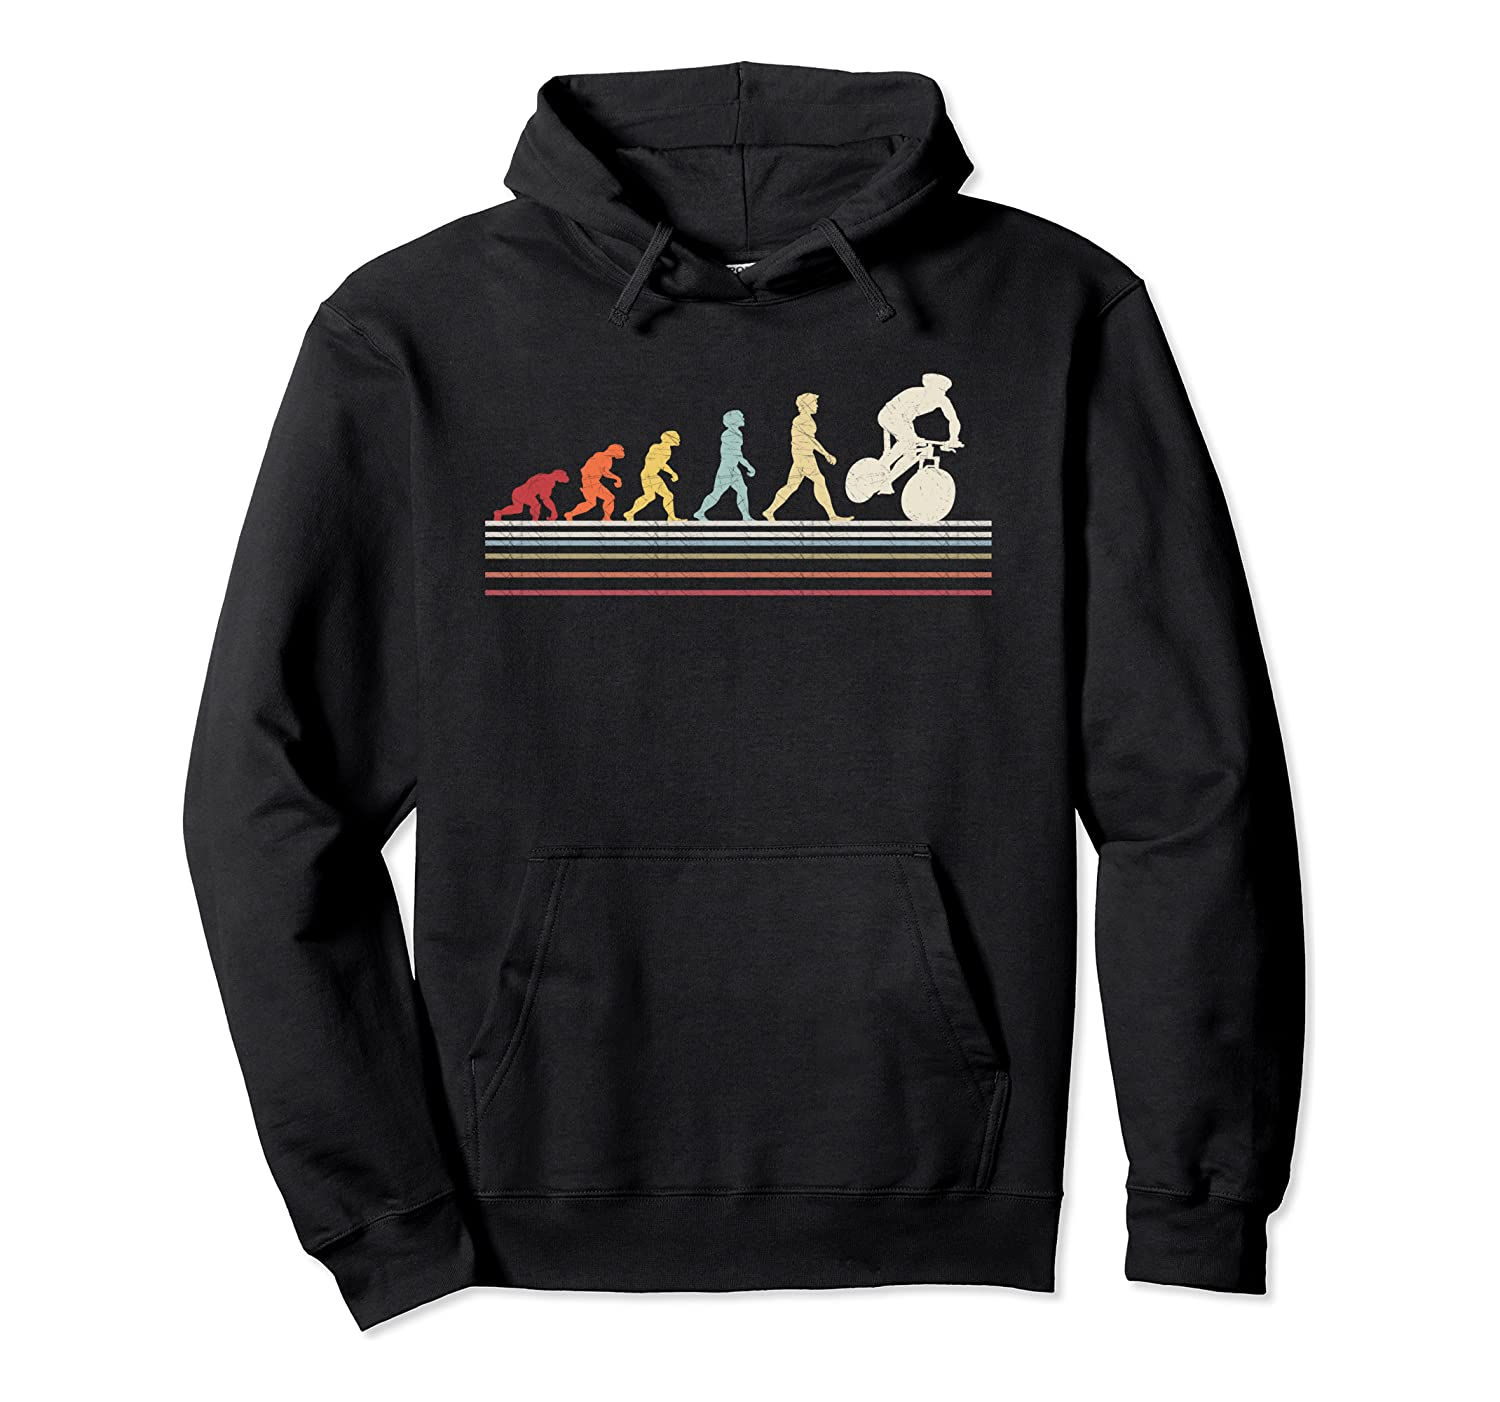 Funny Cycling Evolution Of Man Sport Retro Vintage Gift Pullover Hoodie